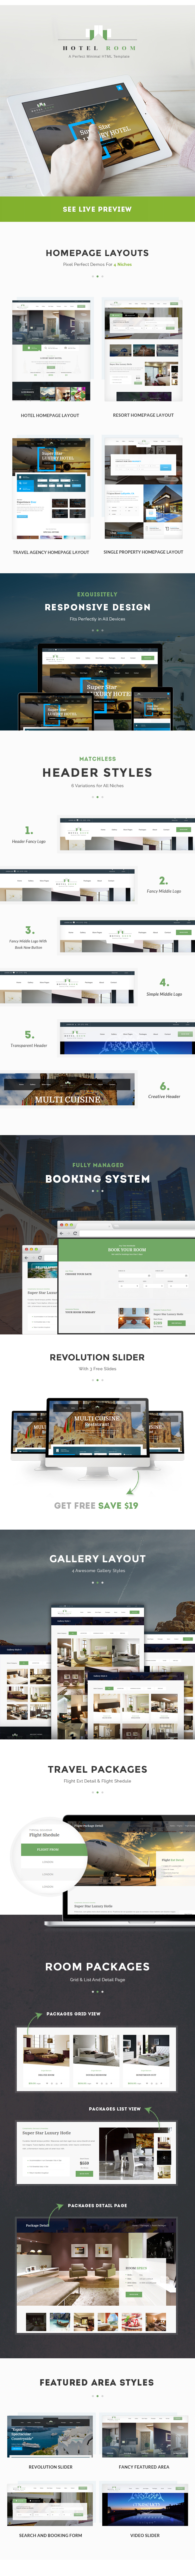 Hotel Room- Minimalist Hotel, Travel HTML Template by webinane ...